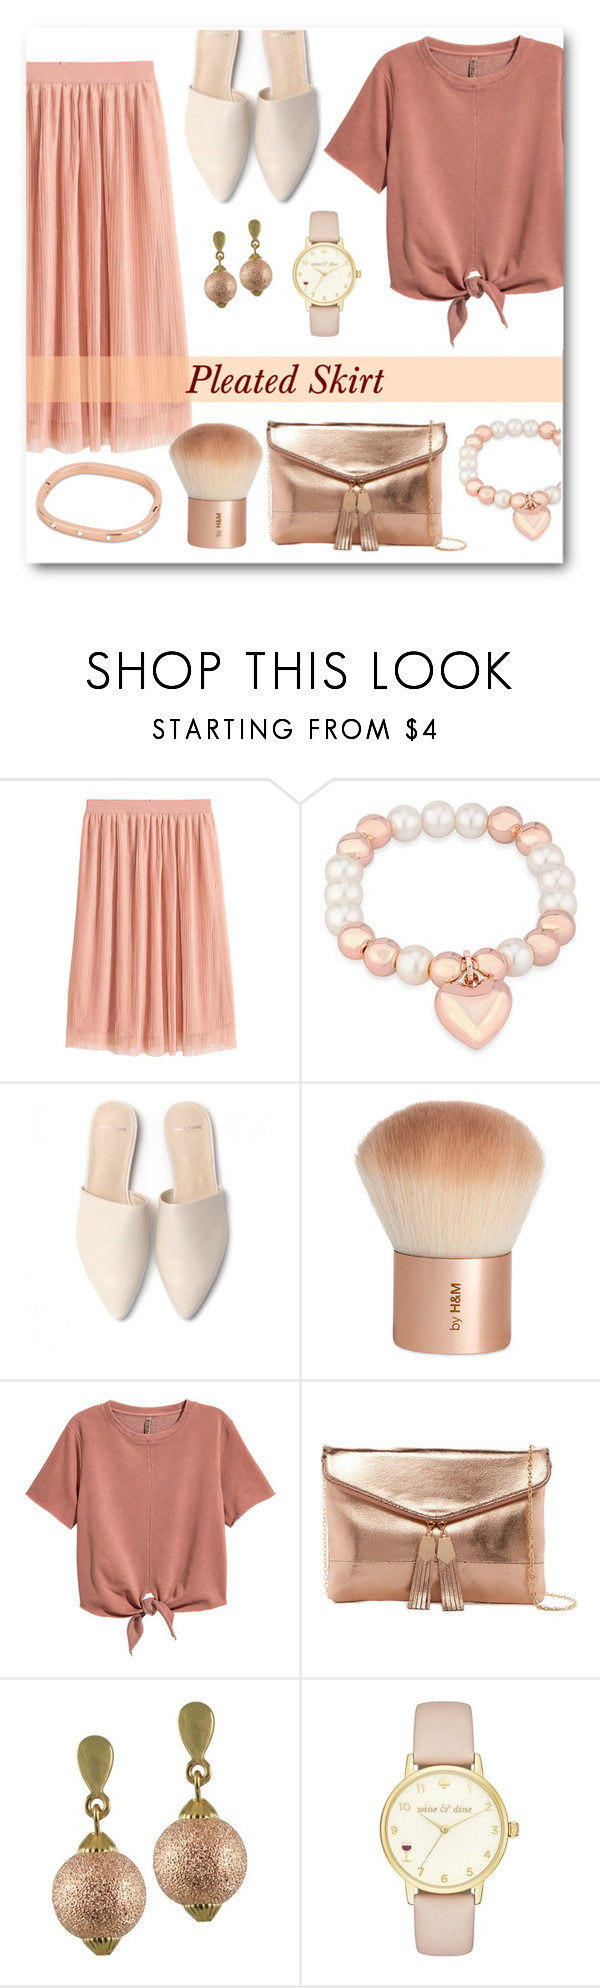 """Pleated Skirt"" by eternal-collection ❤ liked on Polyvore featuring H&M, Urban Expressions and Kate Spade"